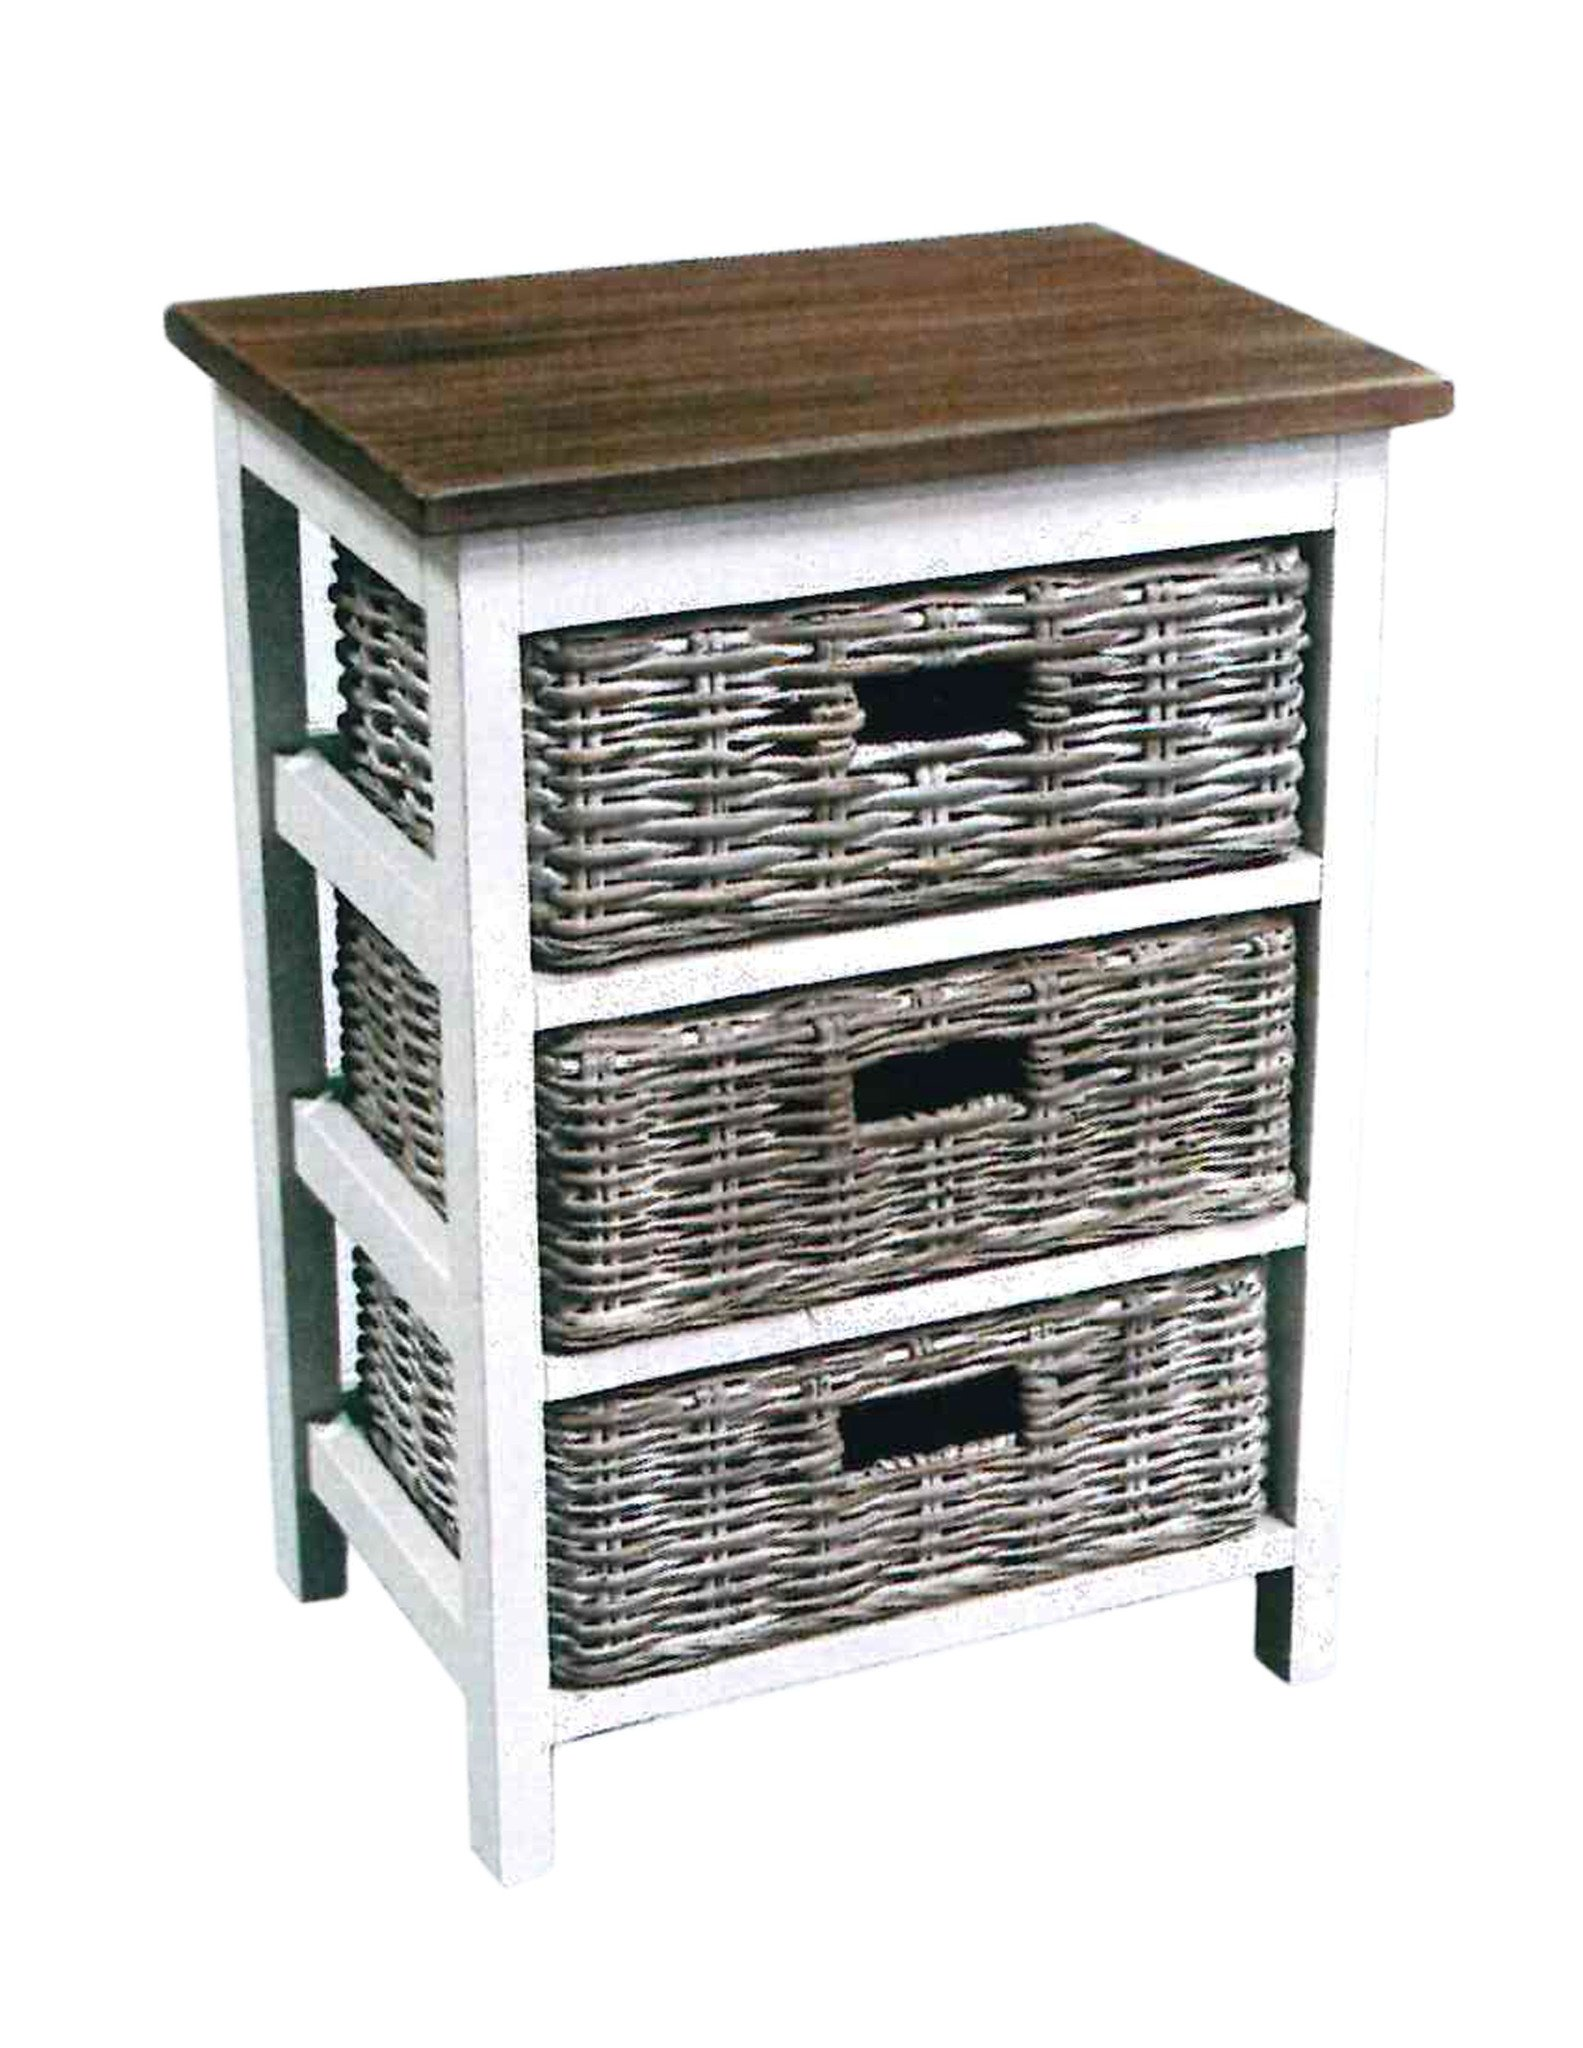 cottagers basket side table vineyard decorators accent with baskets target home furniture led bedside lamp half moon occasional rectangle end drawer lucite coffee square patio